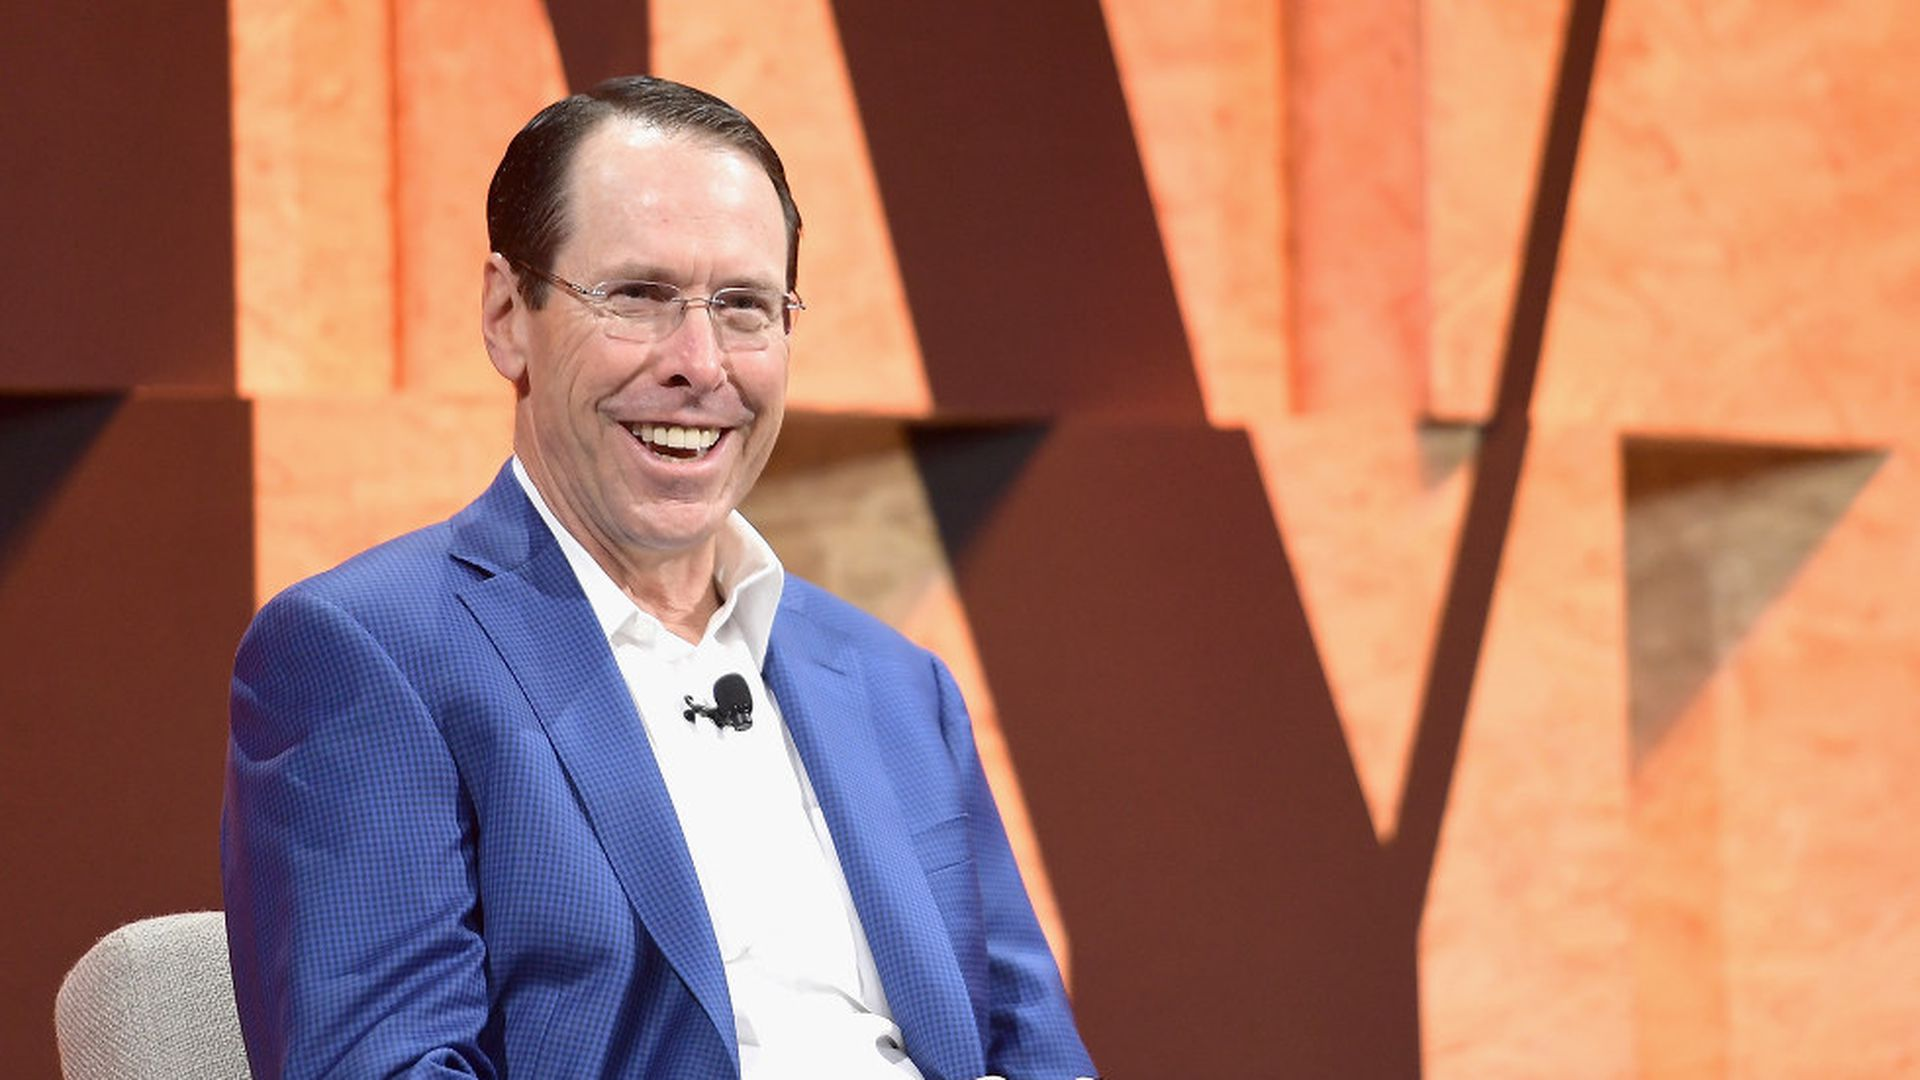 AT&T will give employees a bonus after Trump signs tax bill - Axios